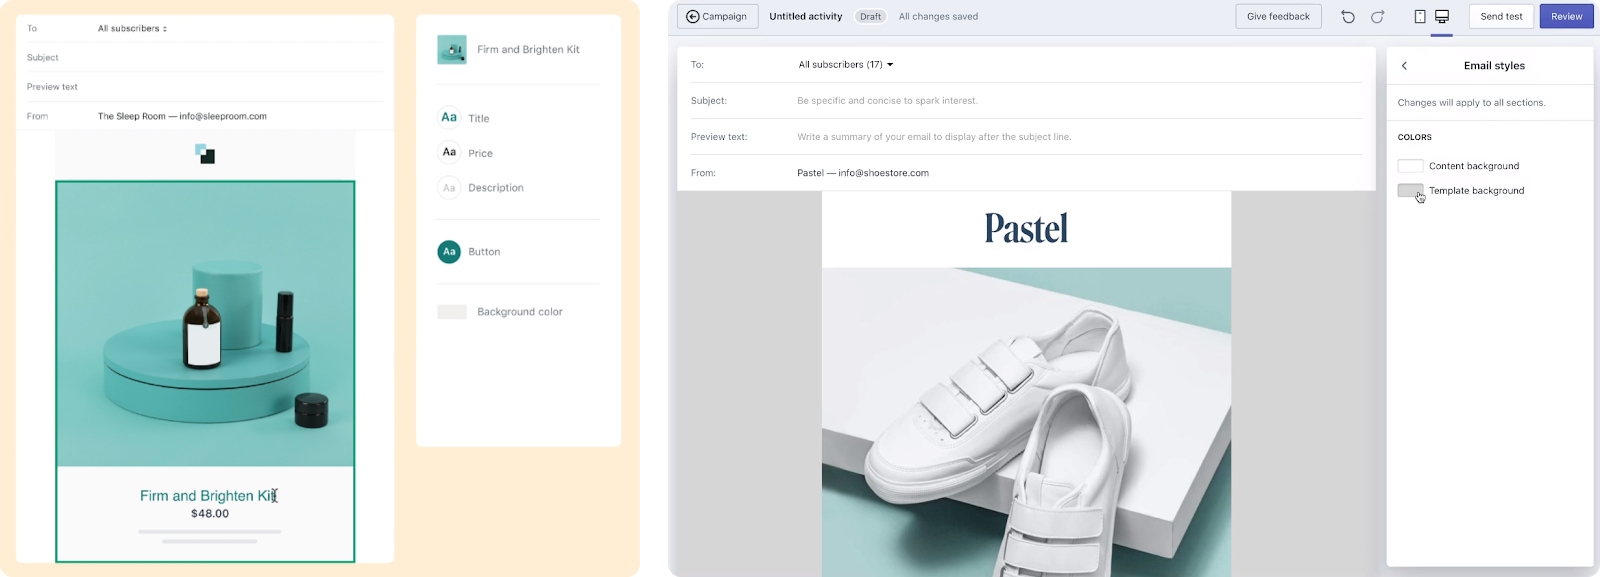 Shopify email is easy to use out of the box